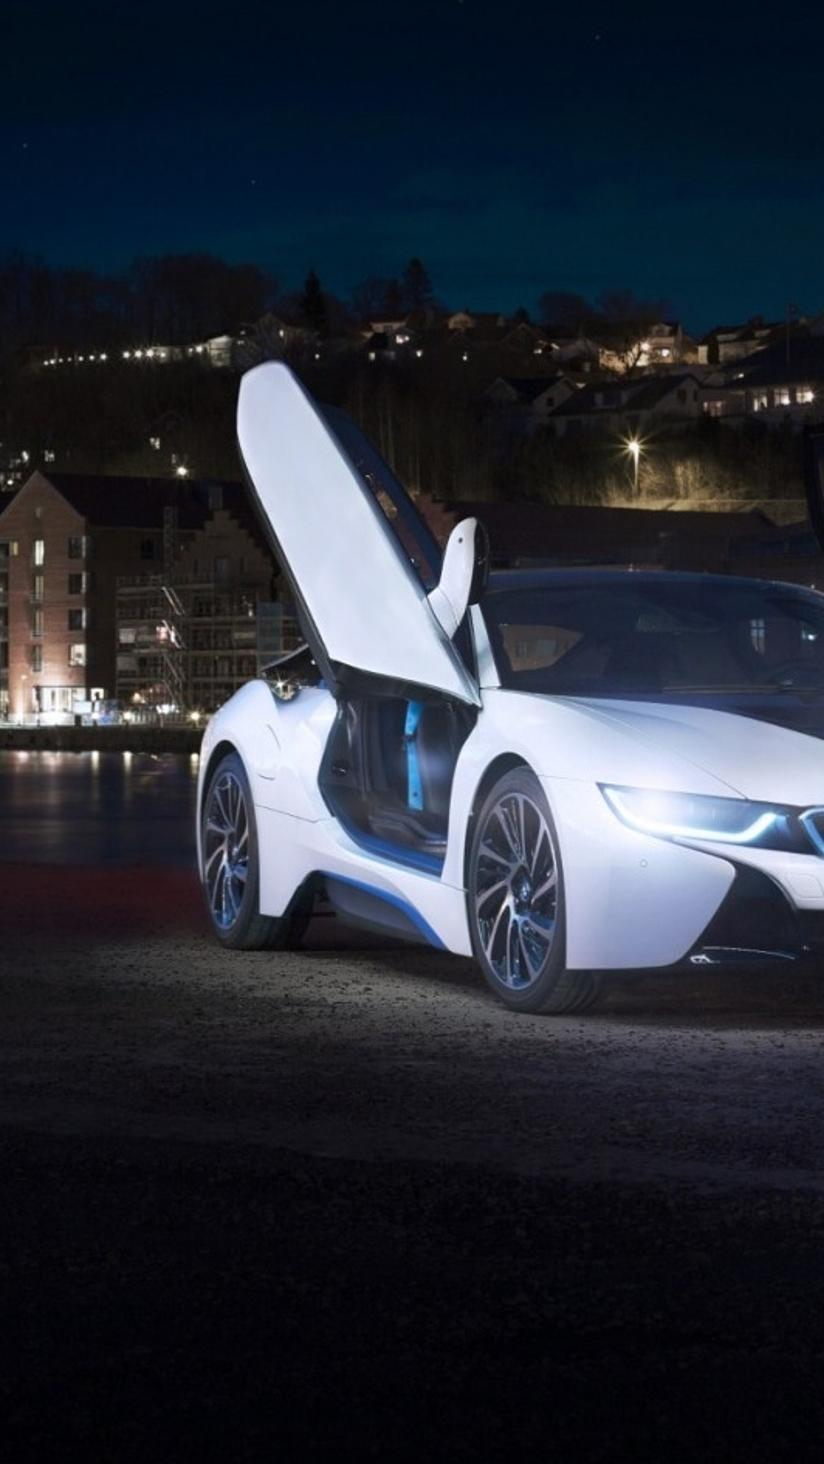 White Bmw I8 Concept With Opened Doors In The City Wallpaper